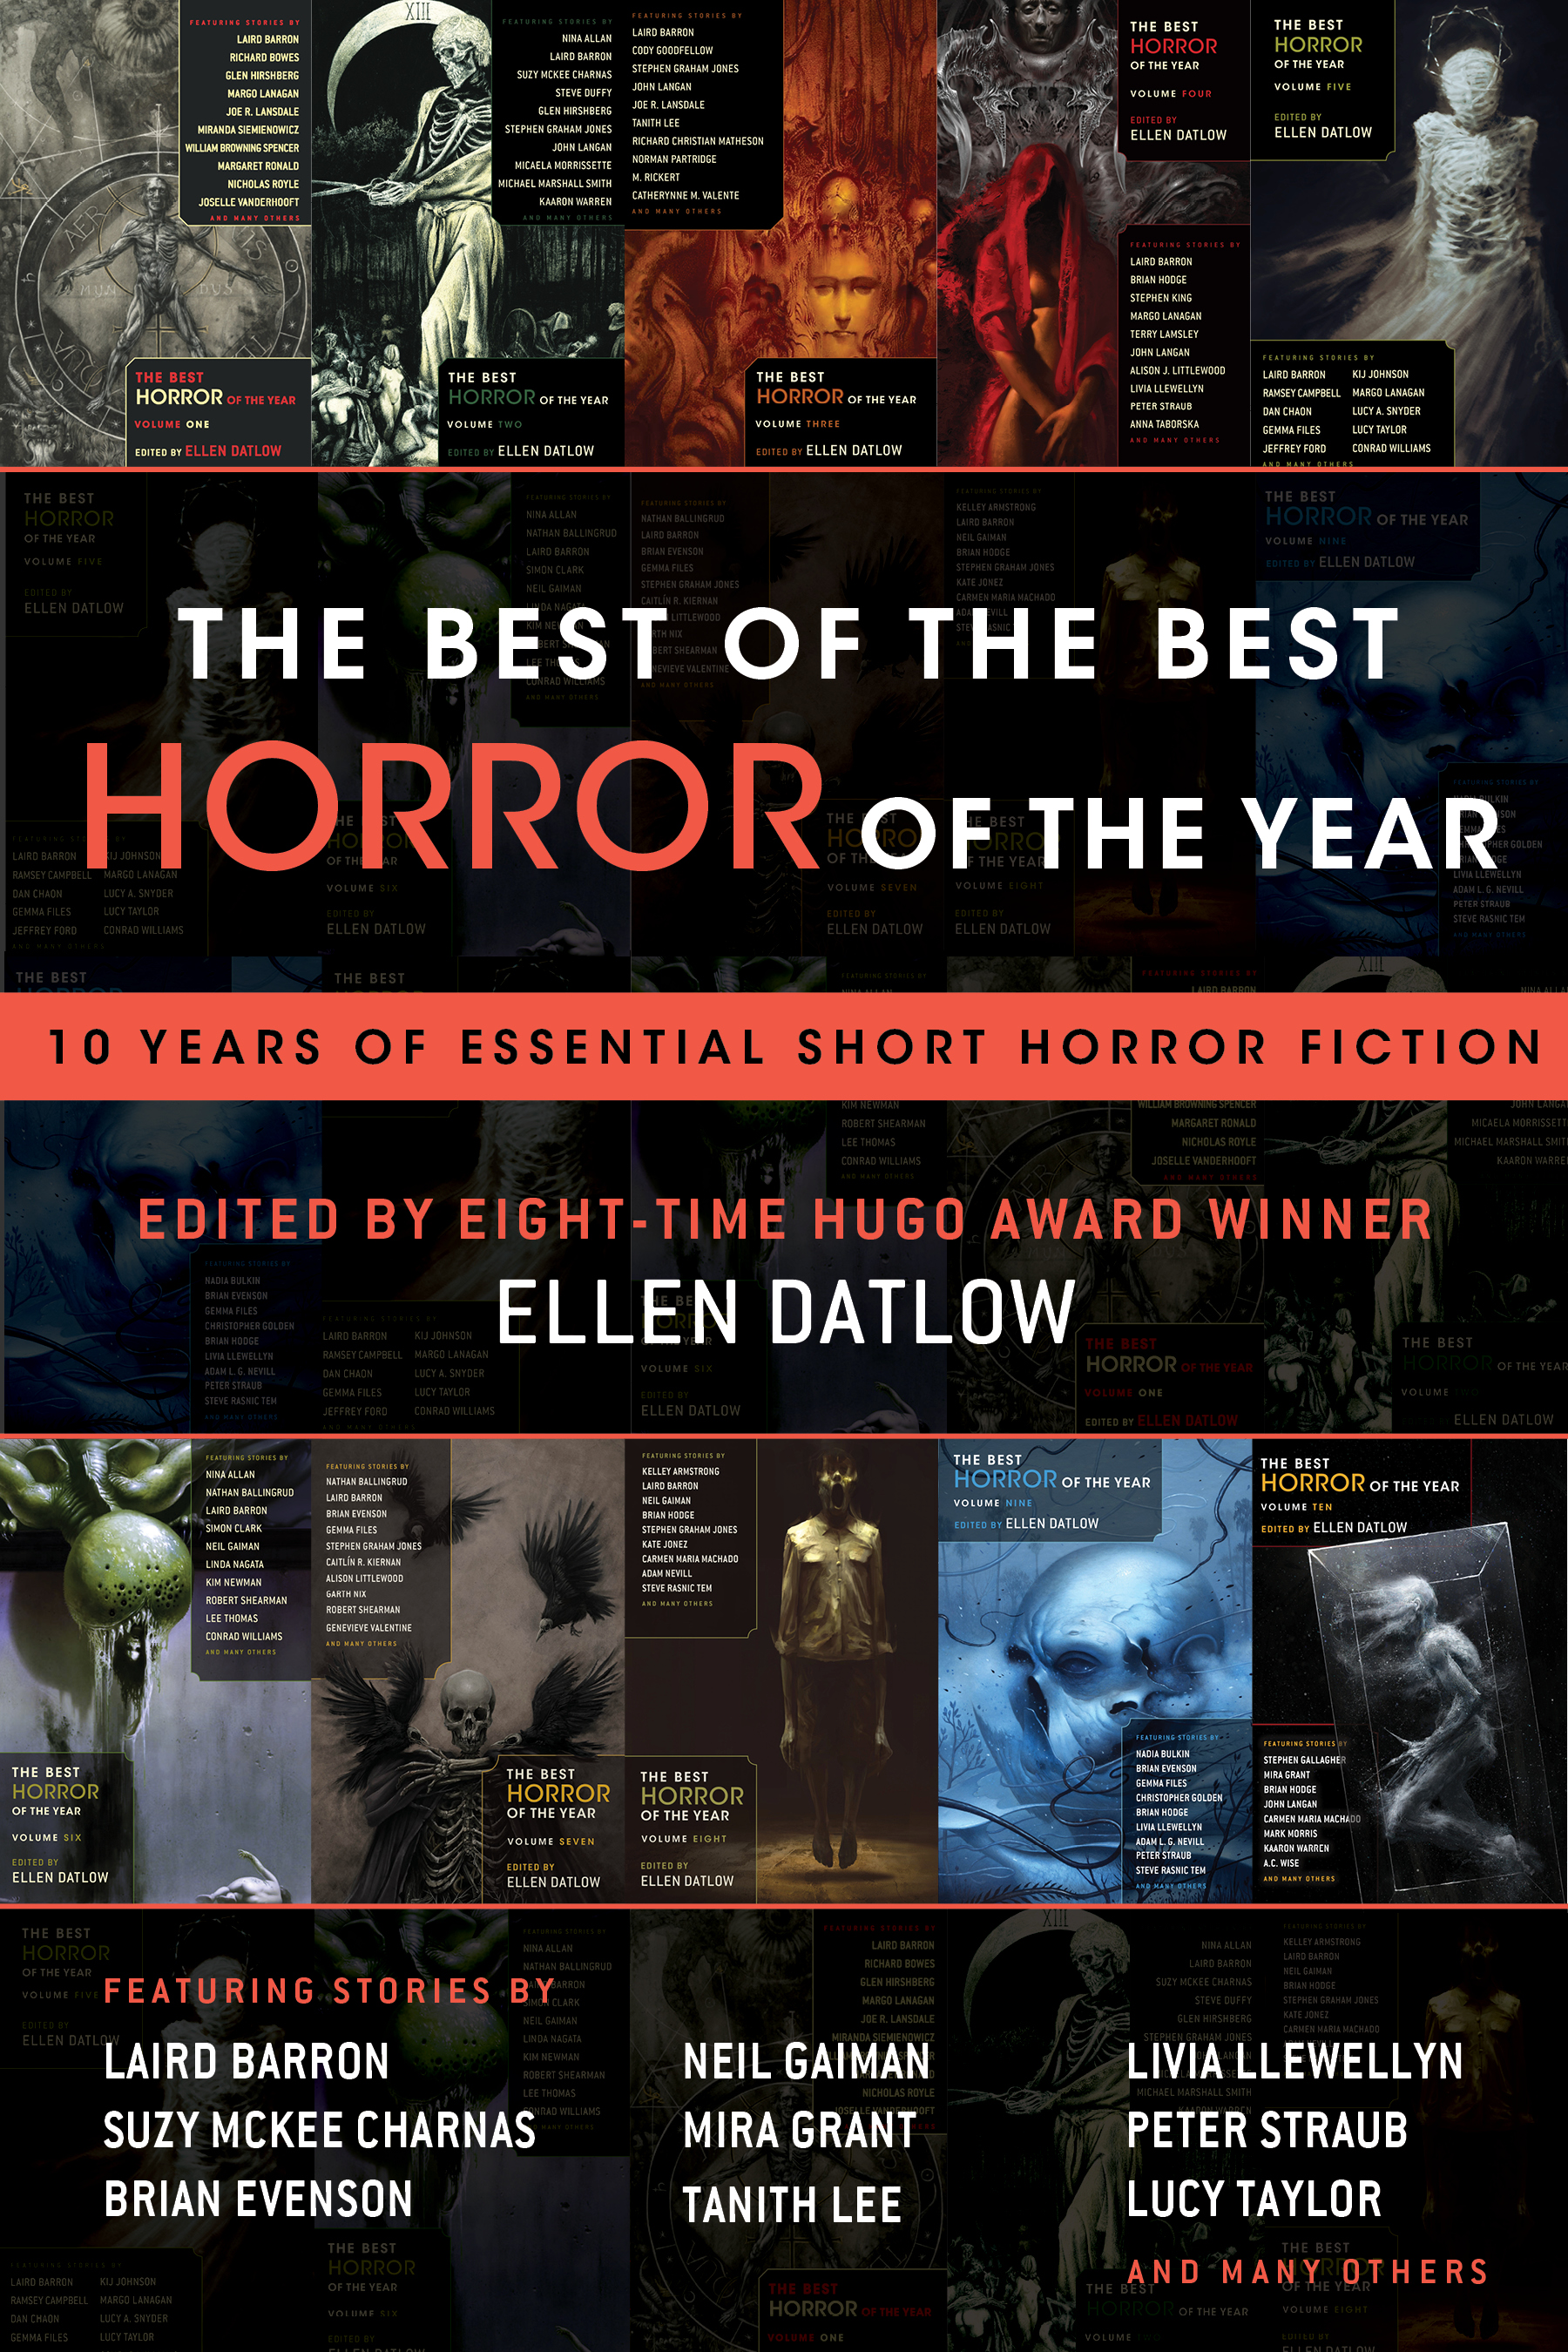 The Best of the Best Horror of the Year cover